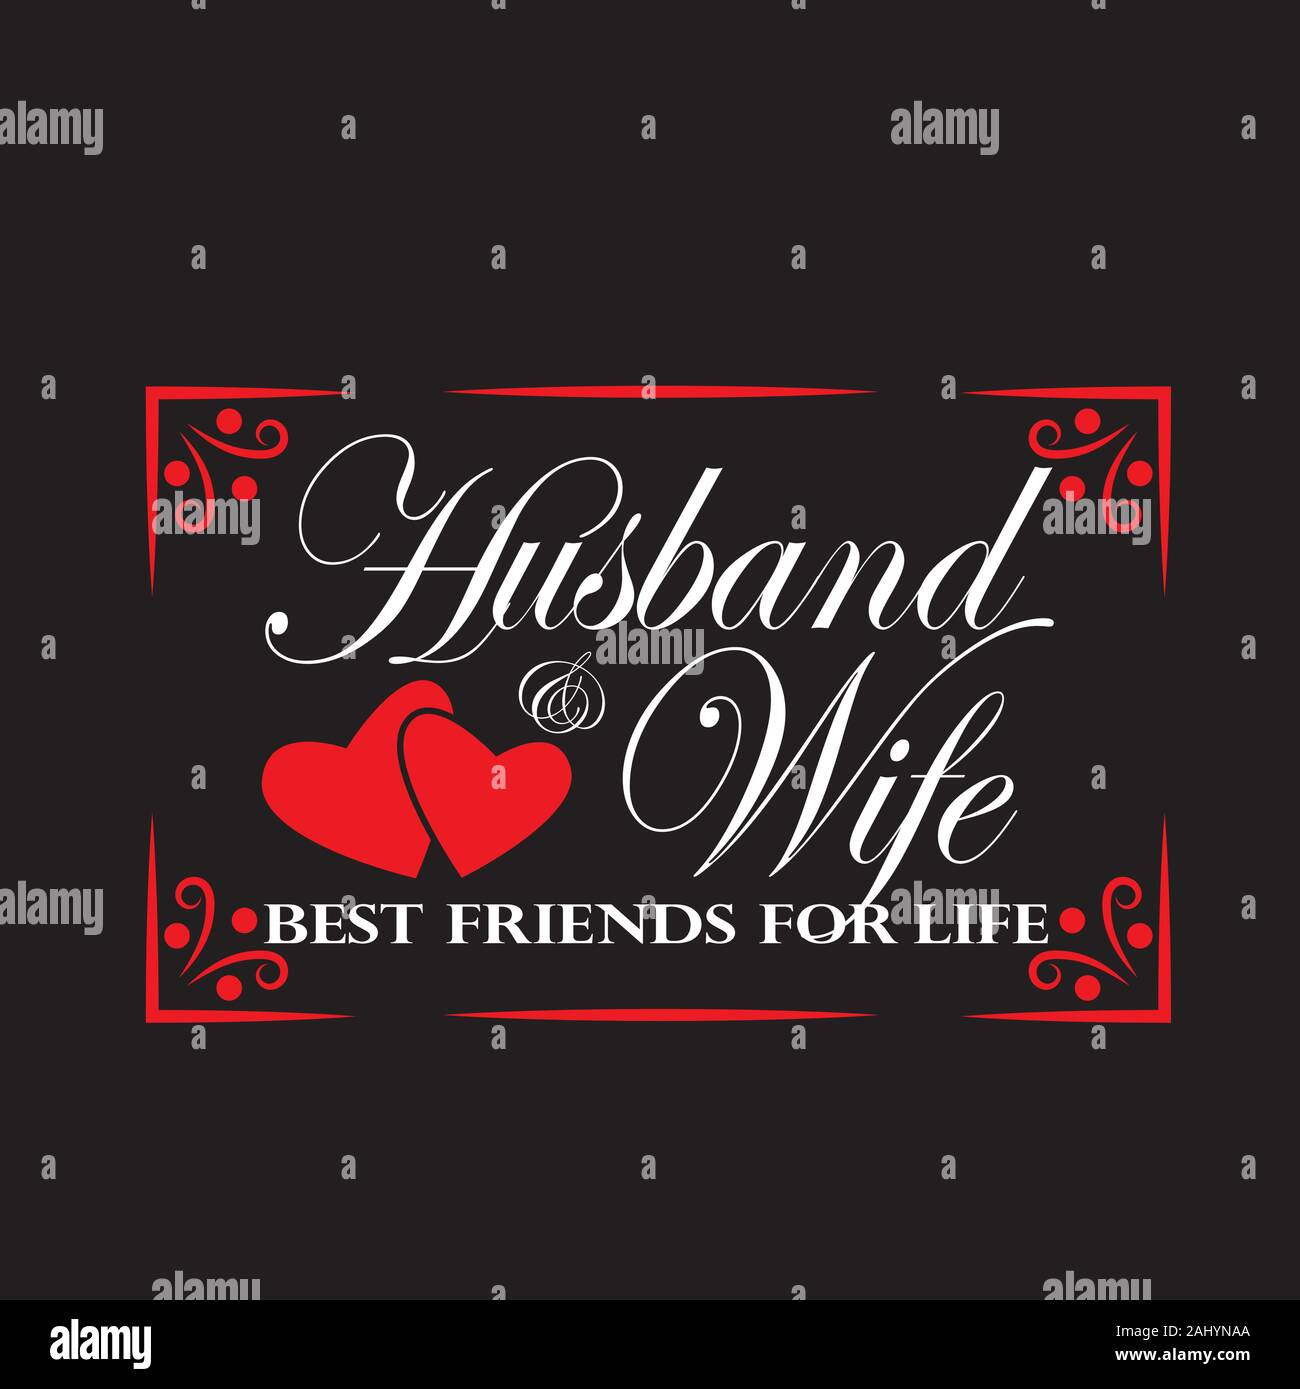 Wedding Quotes And Slogan Good For T Shirt Husband Wife Best Friends For Life Stock Vector Image Art Alamy